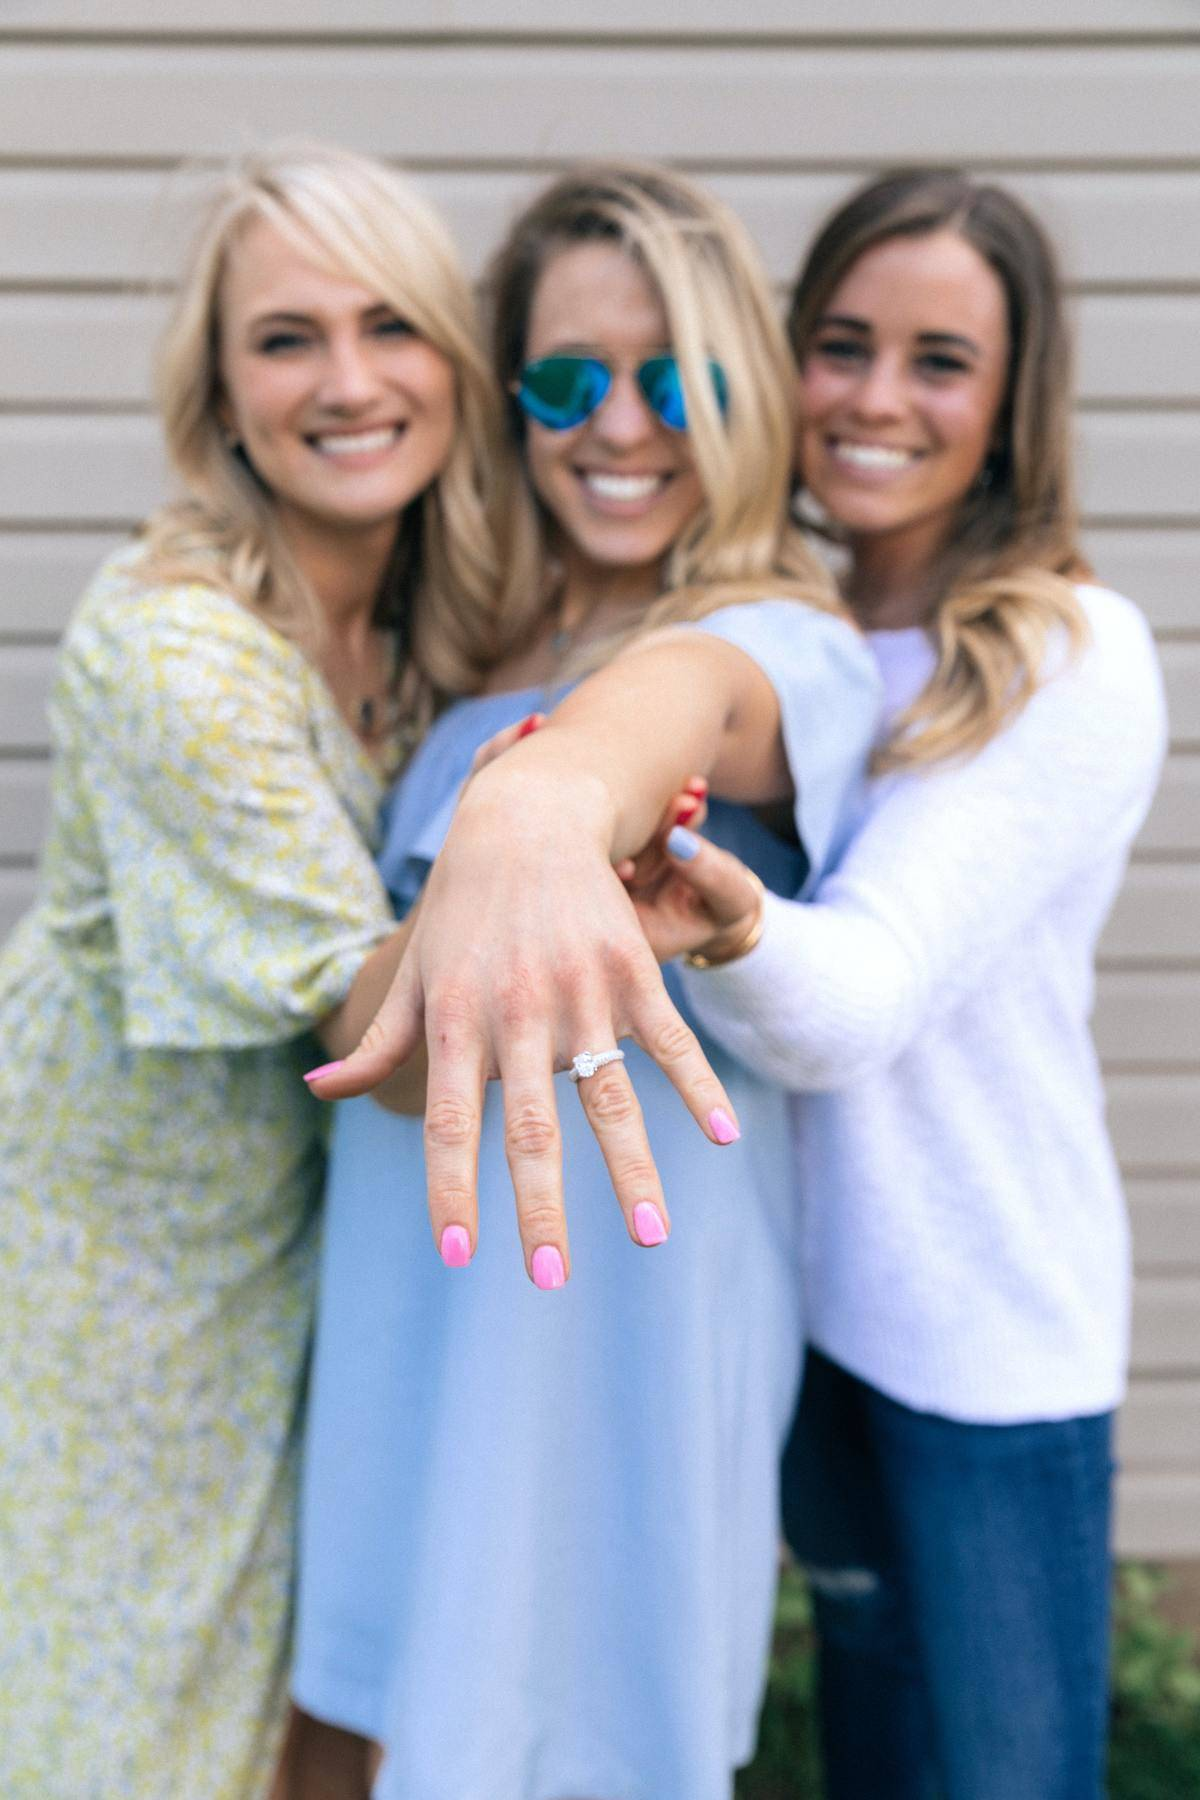 Woman shows off engagement ring, friends smile alongside